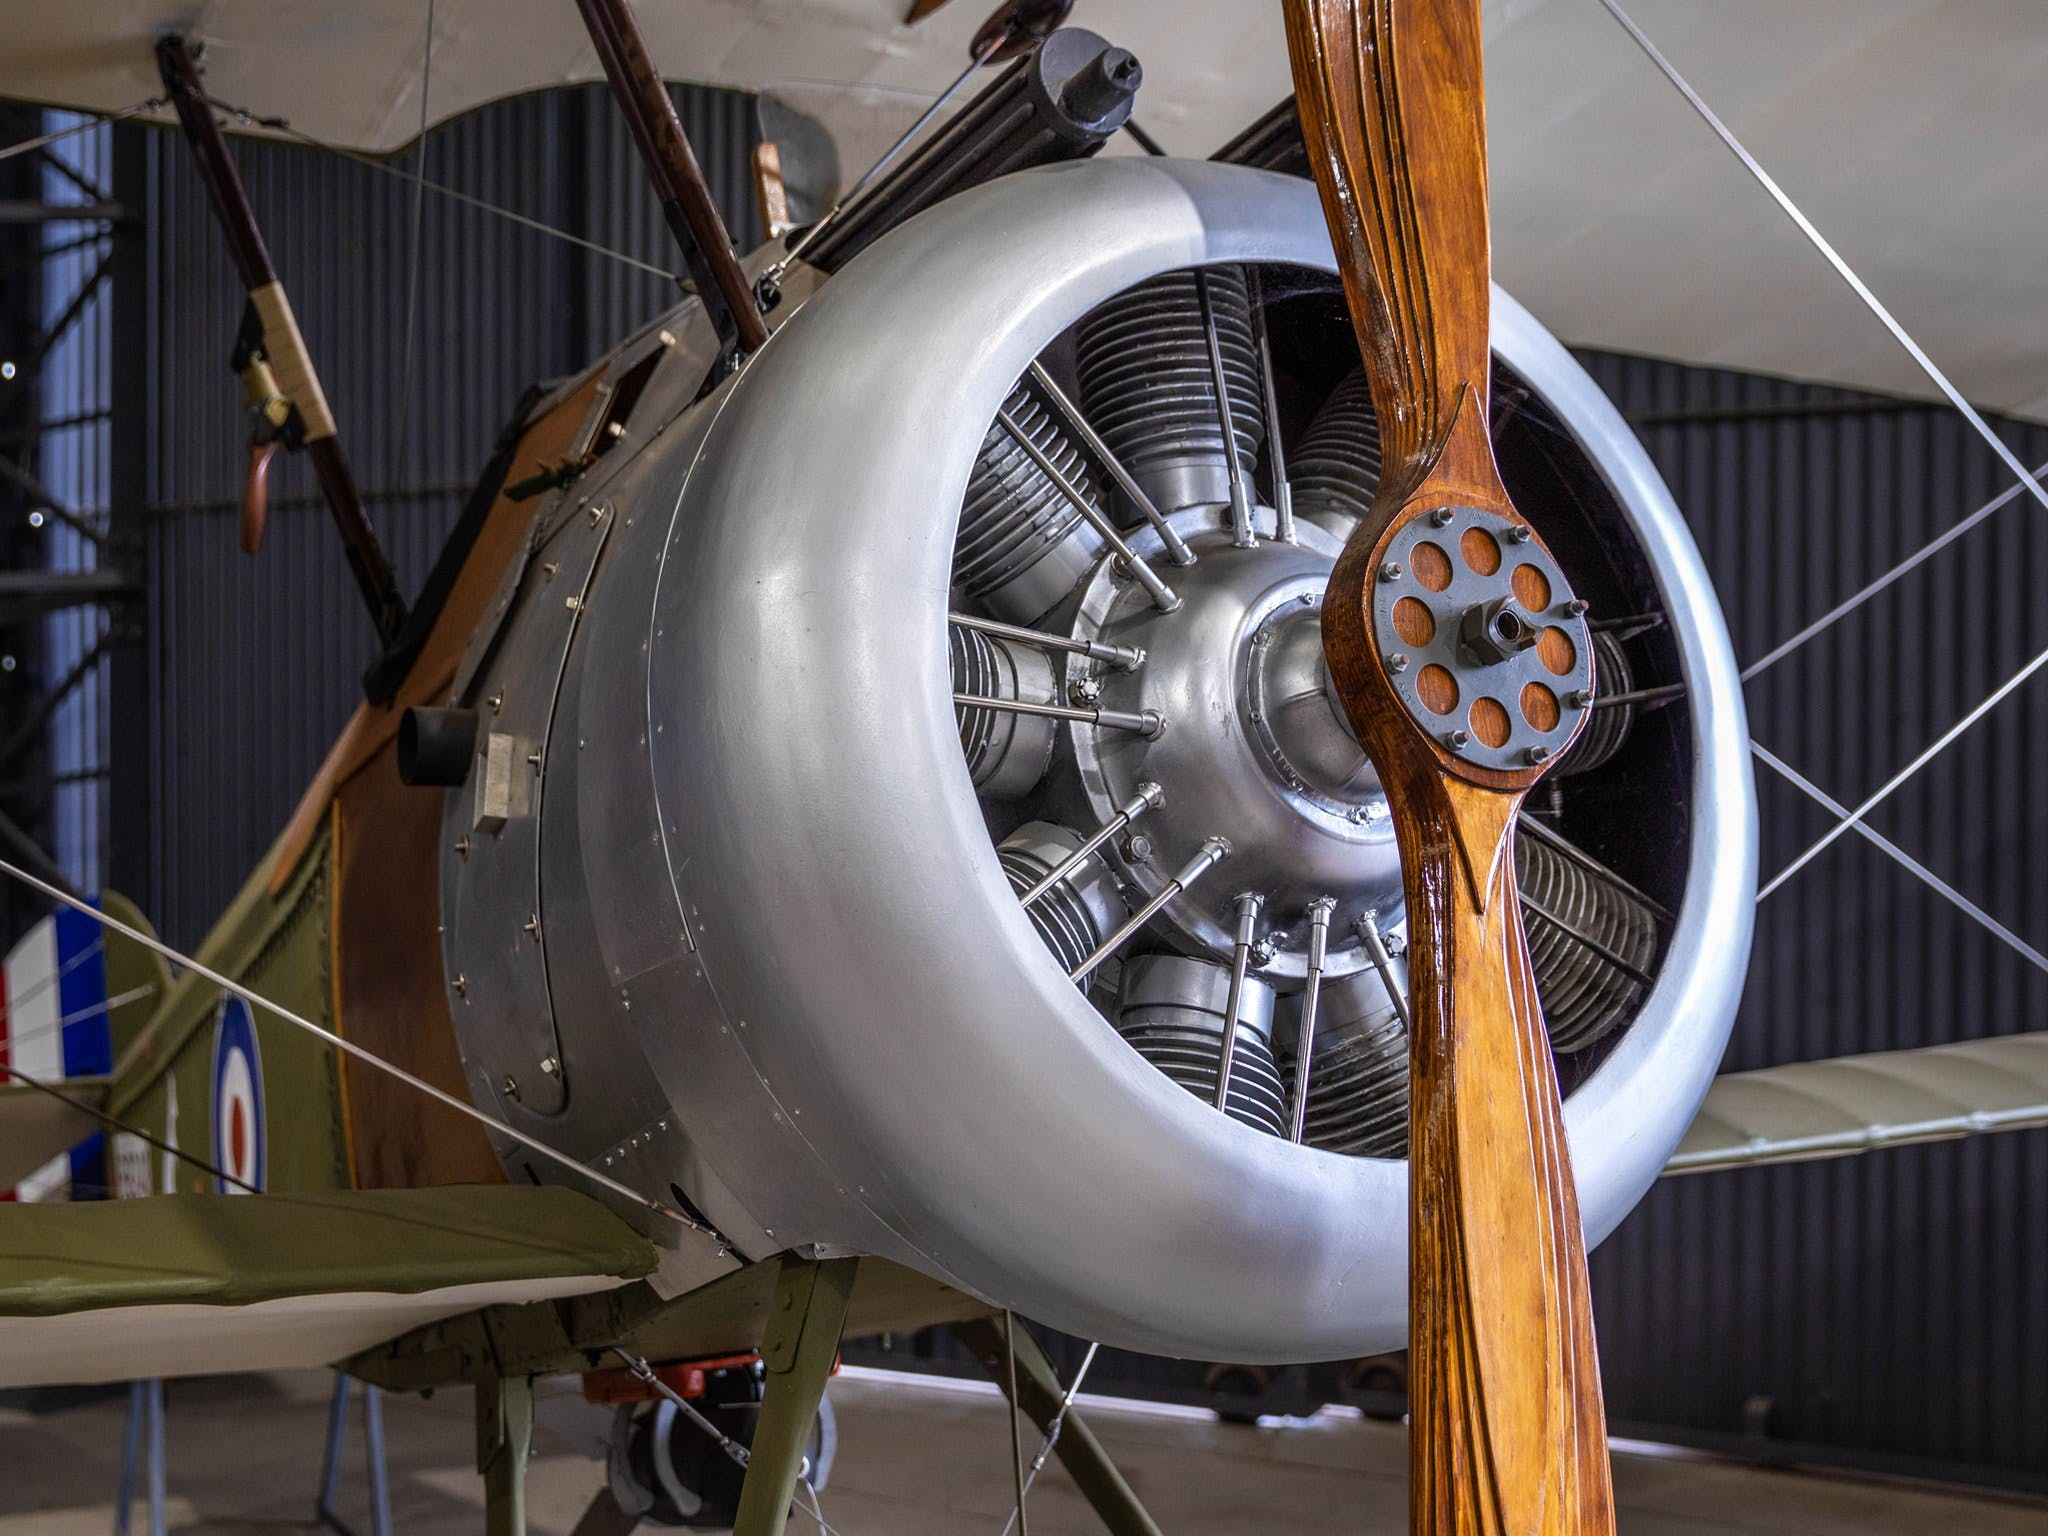 RAAF Amberley Aviation Heritage Centre - WA Accommodation